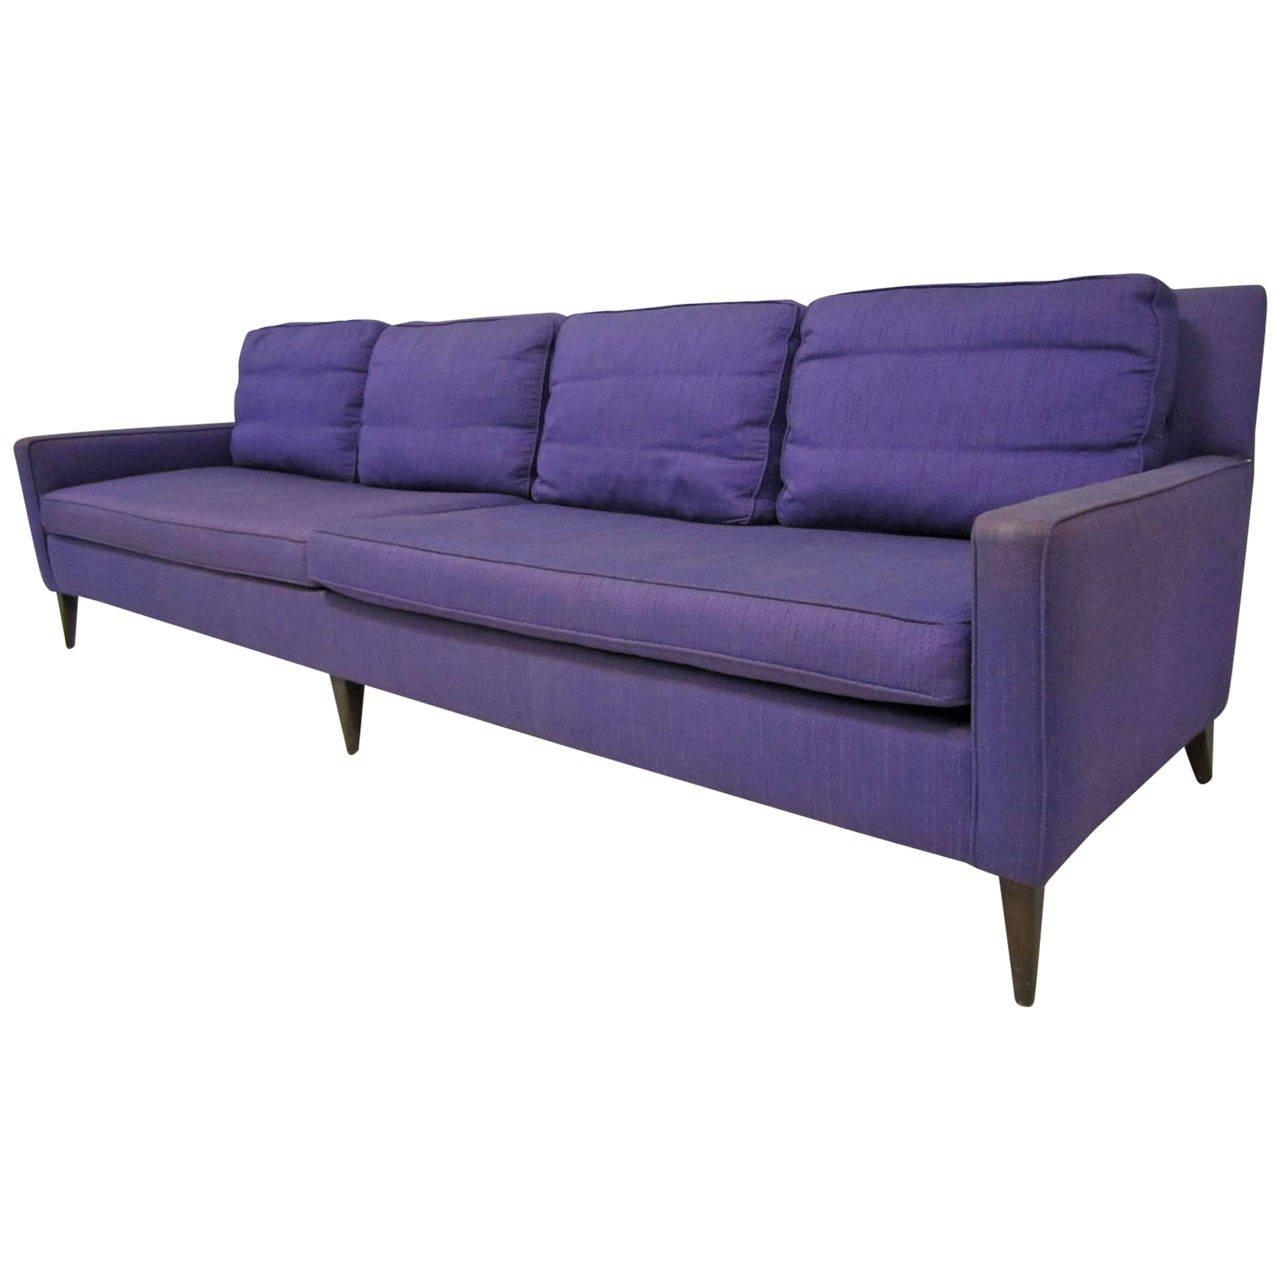 Stunning Signed Paul Mccobb Long Sofa, Mid Century Modern For Sale Inside Florence Knoll Wood Legs Sofas (Image 19 of 20)